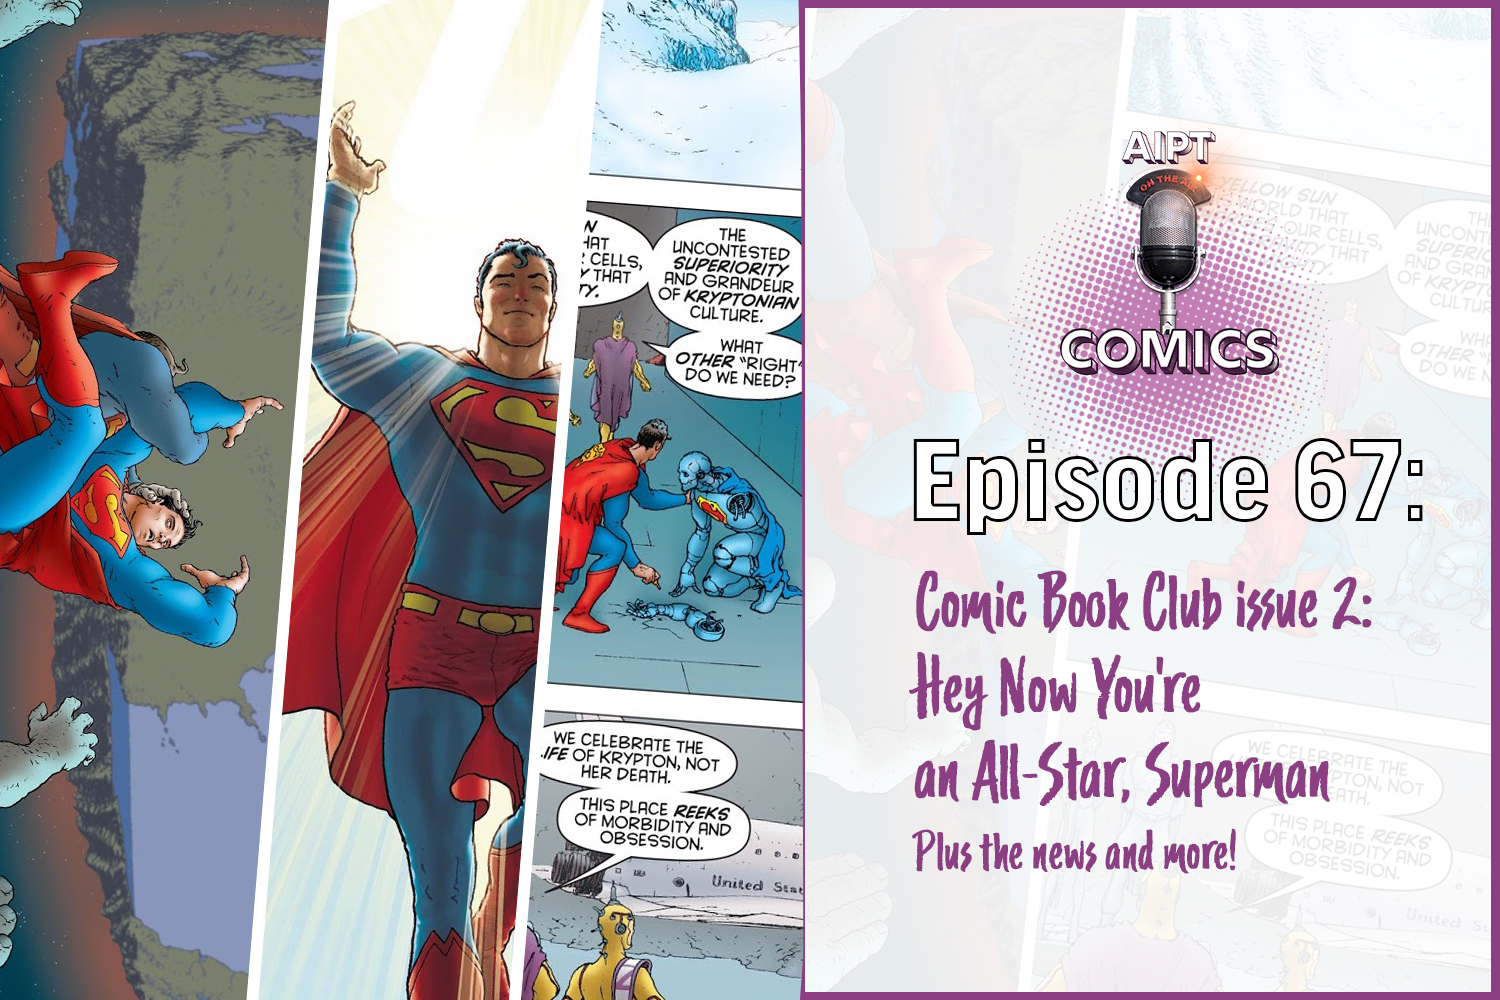 Join Dave and Forrest as they break down All-Star Superman by Grant Morrison and Frank Quitely in their AIPT book club. What works, what doesn't, and can we ever expect a sequel? They break it all down.